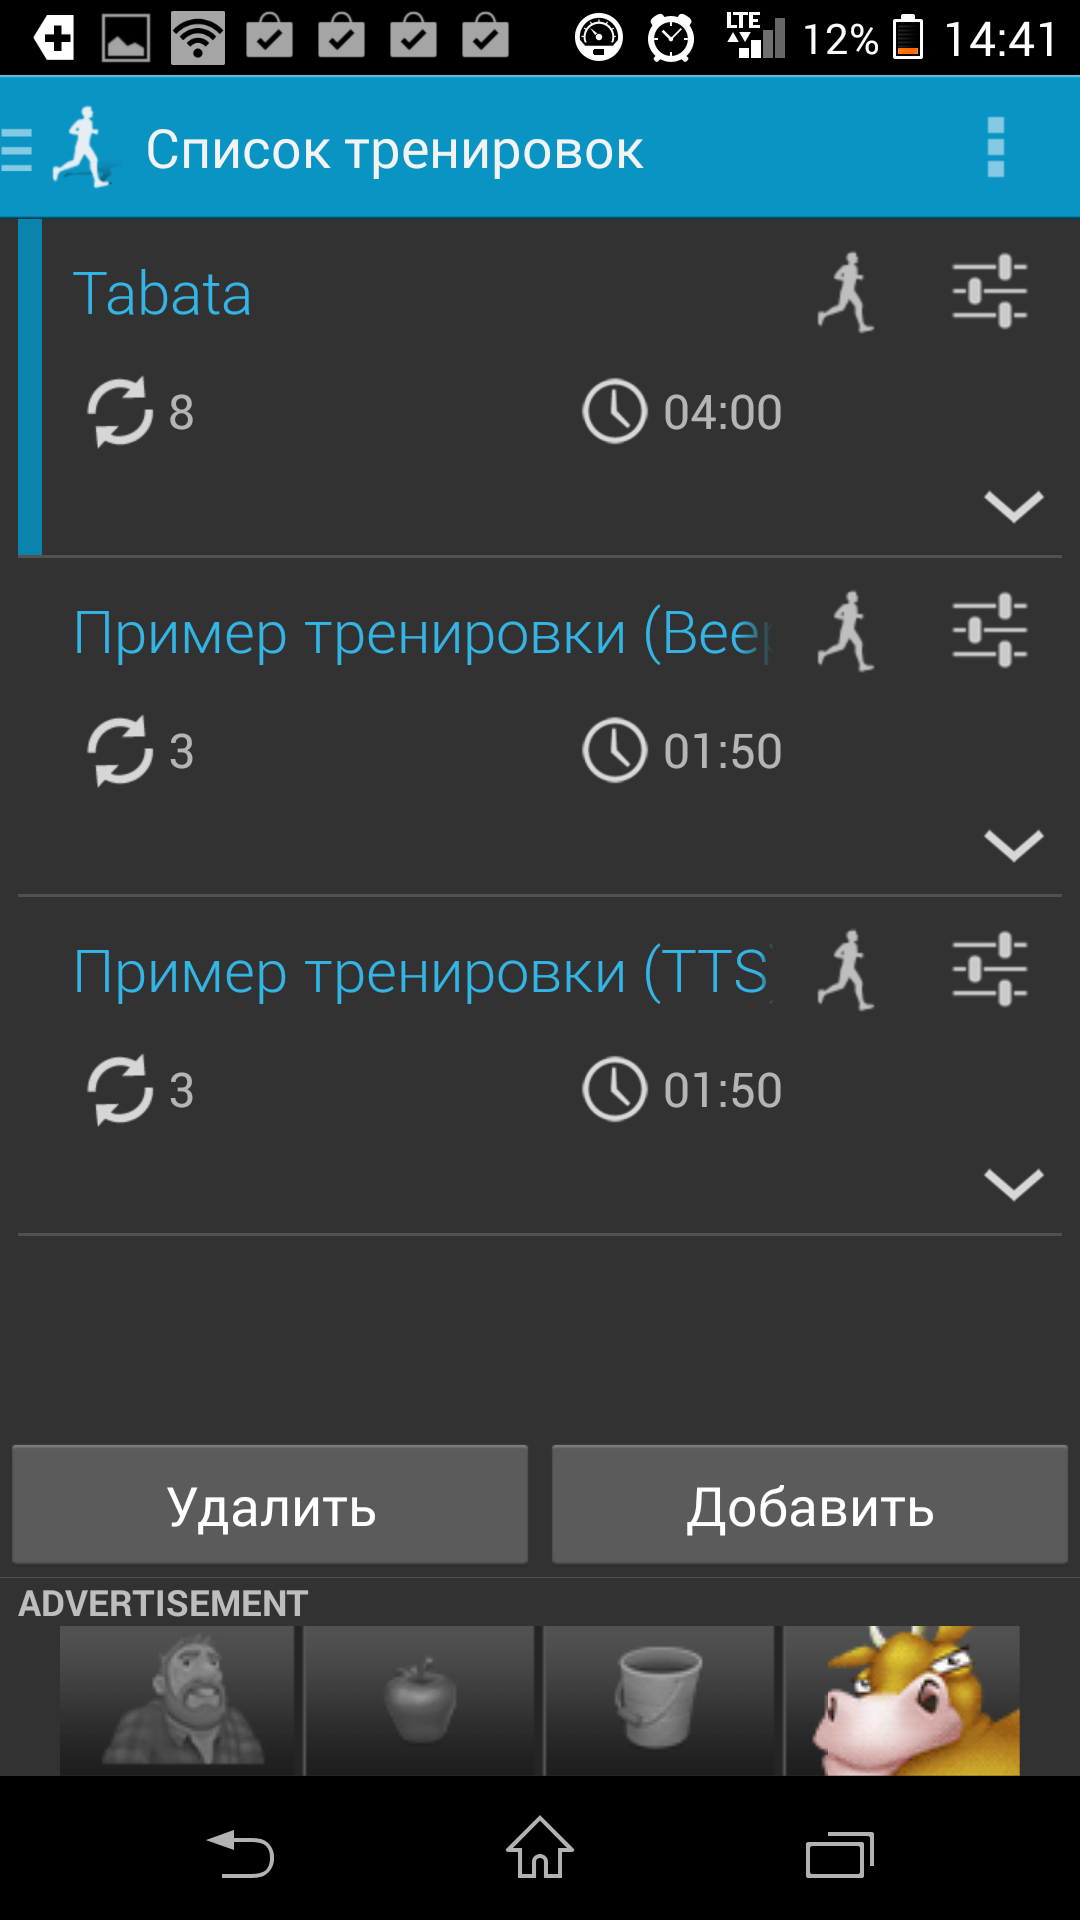 Расписание - HIIT - Interval Training Timer для Android